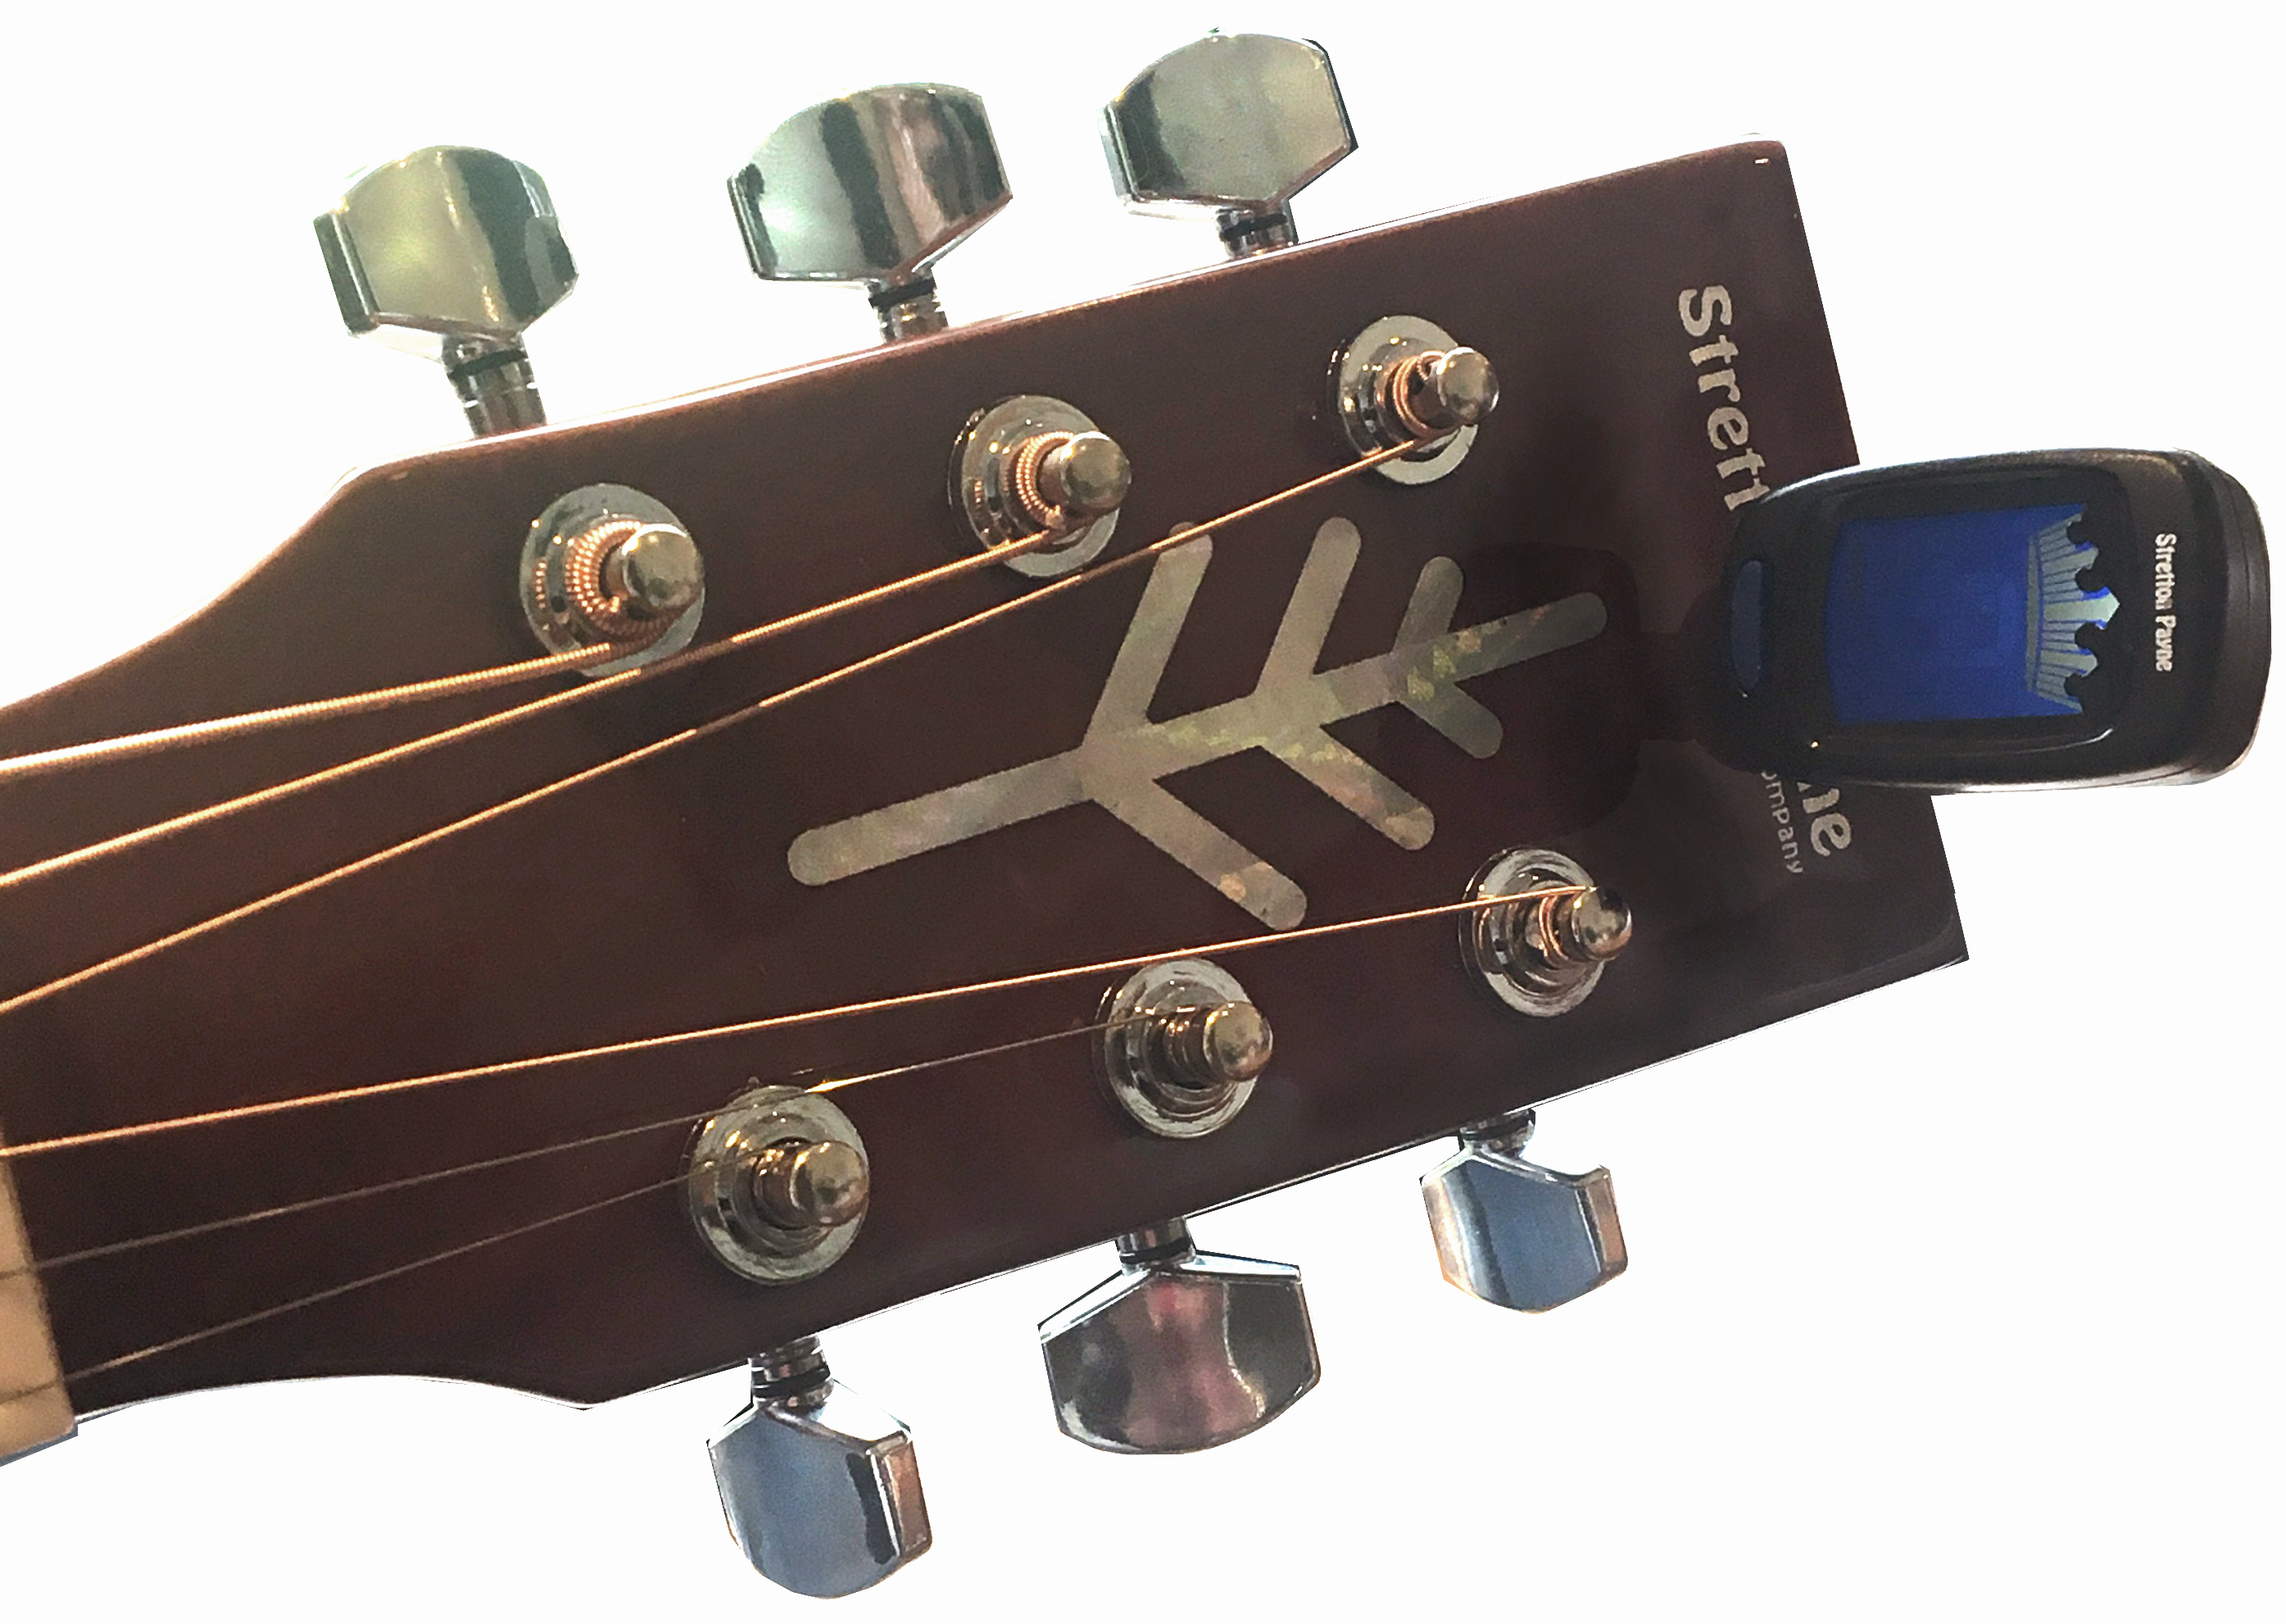 tuner-on-headstock.jpg